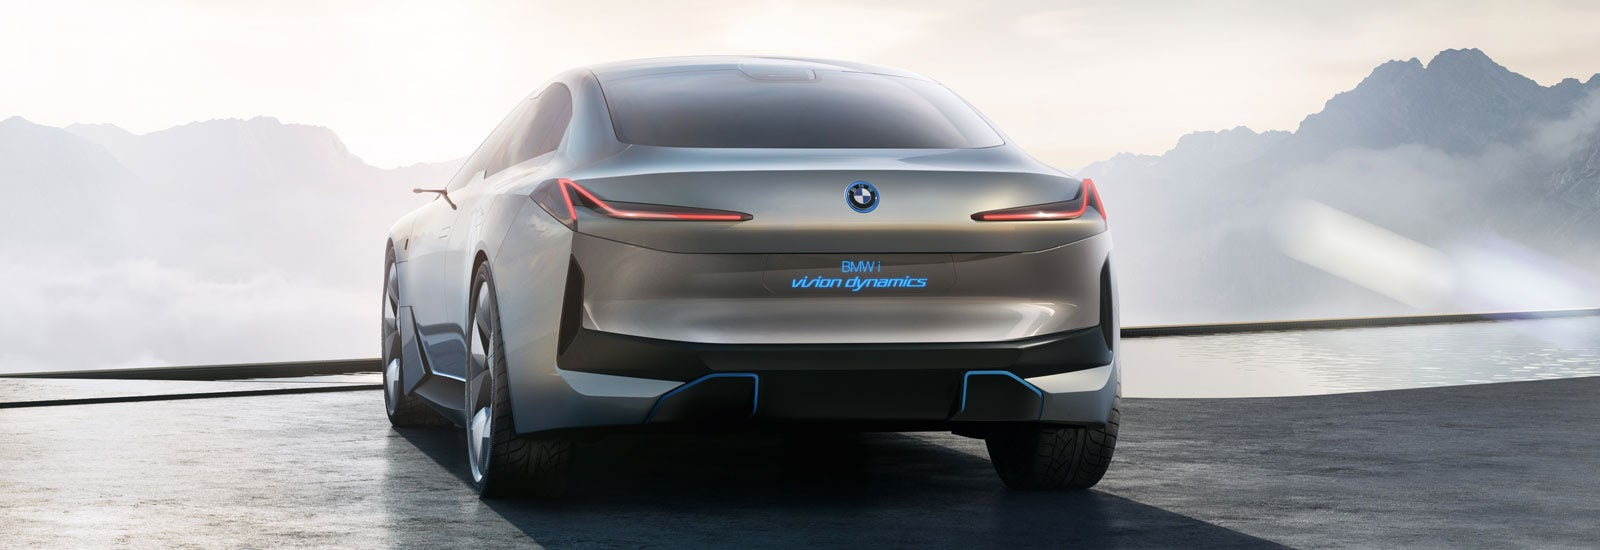 bmw i4 gran coupe price, specs and release date   carwow